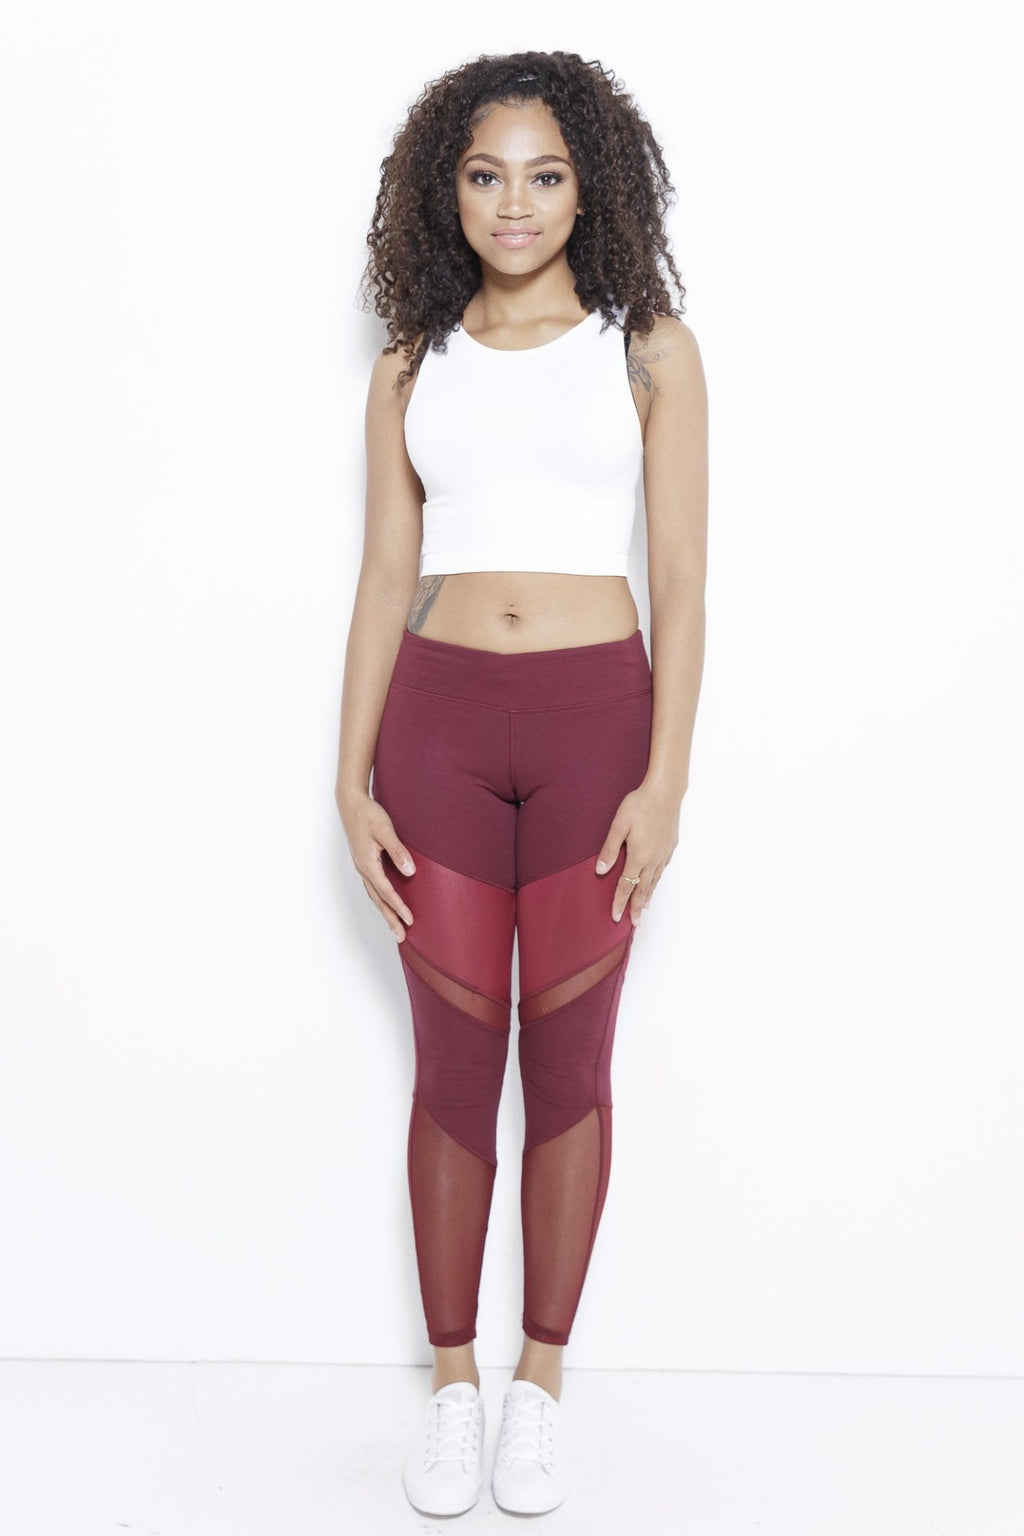 Ivanna Wine Active Leggings Clothing Fair Shade XS Wine 75% Cotton, 12% Rayon, 13% Spandex